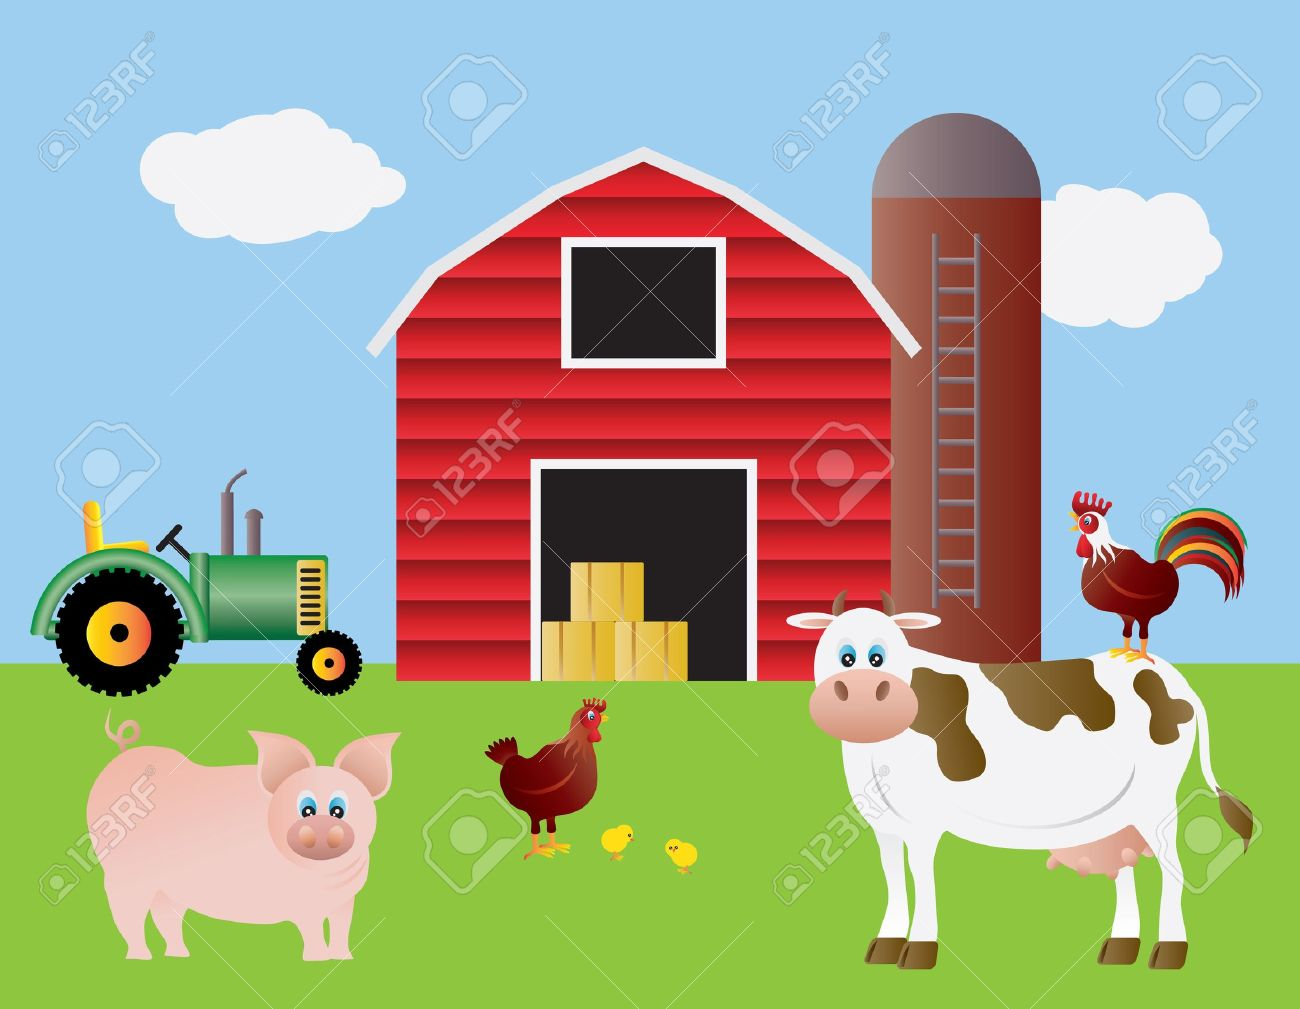 Cow on green pasture with red barn with grain silo royalty free stock - Farm With Red Barn Tractor Pig Cow Chicken Farm Animals Illustration Stock Vector 13173934